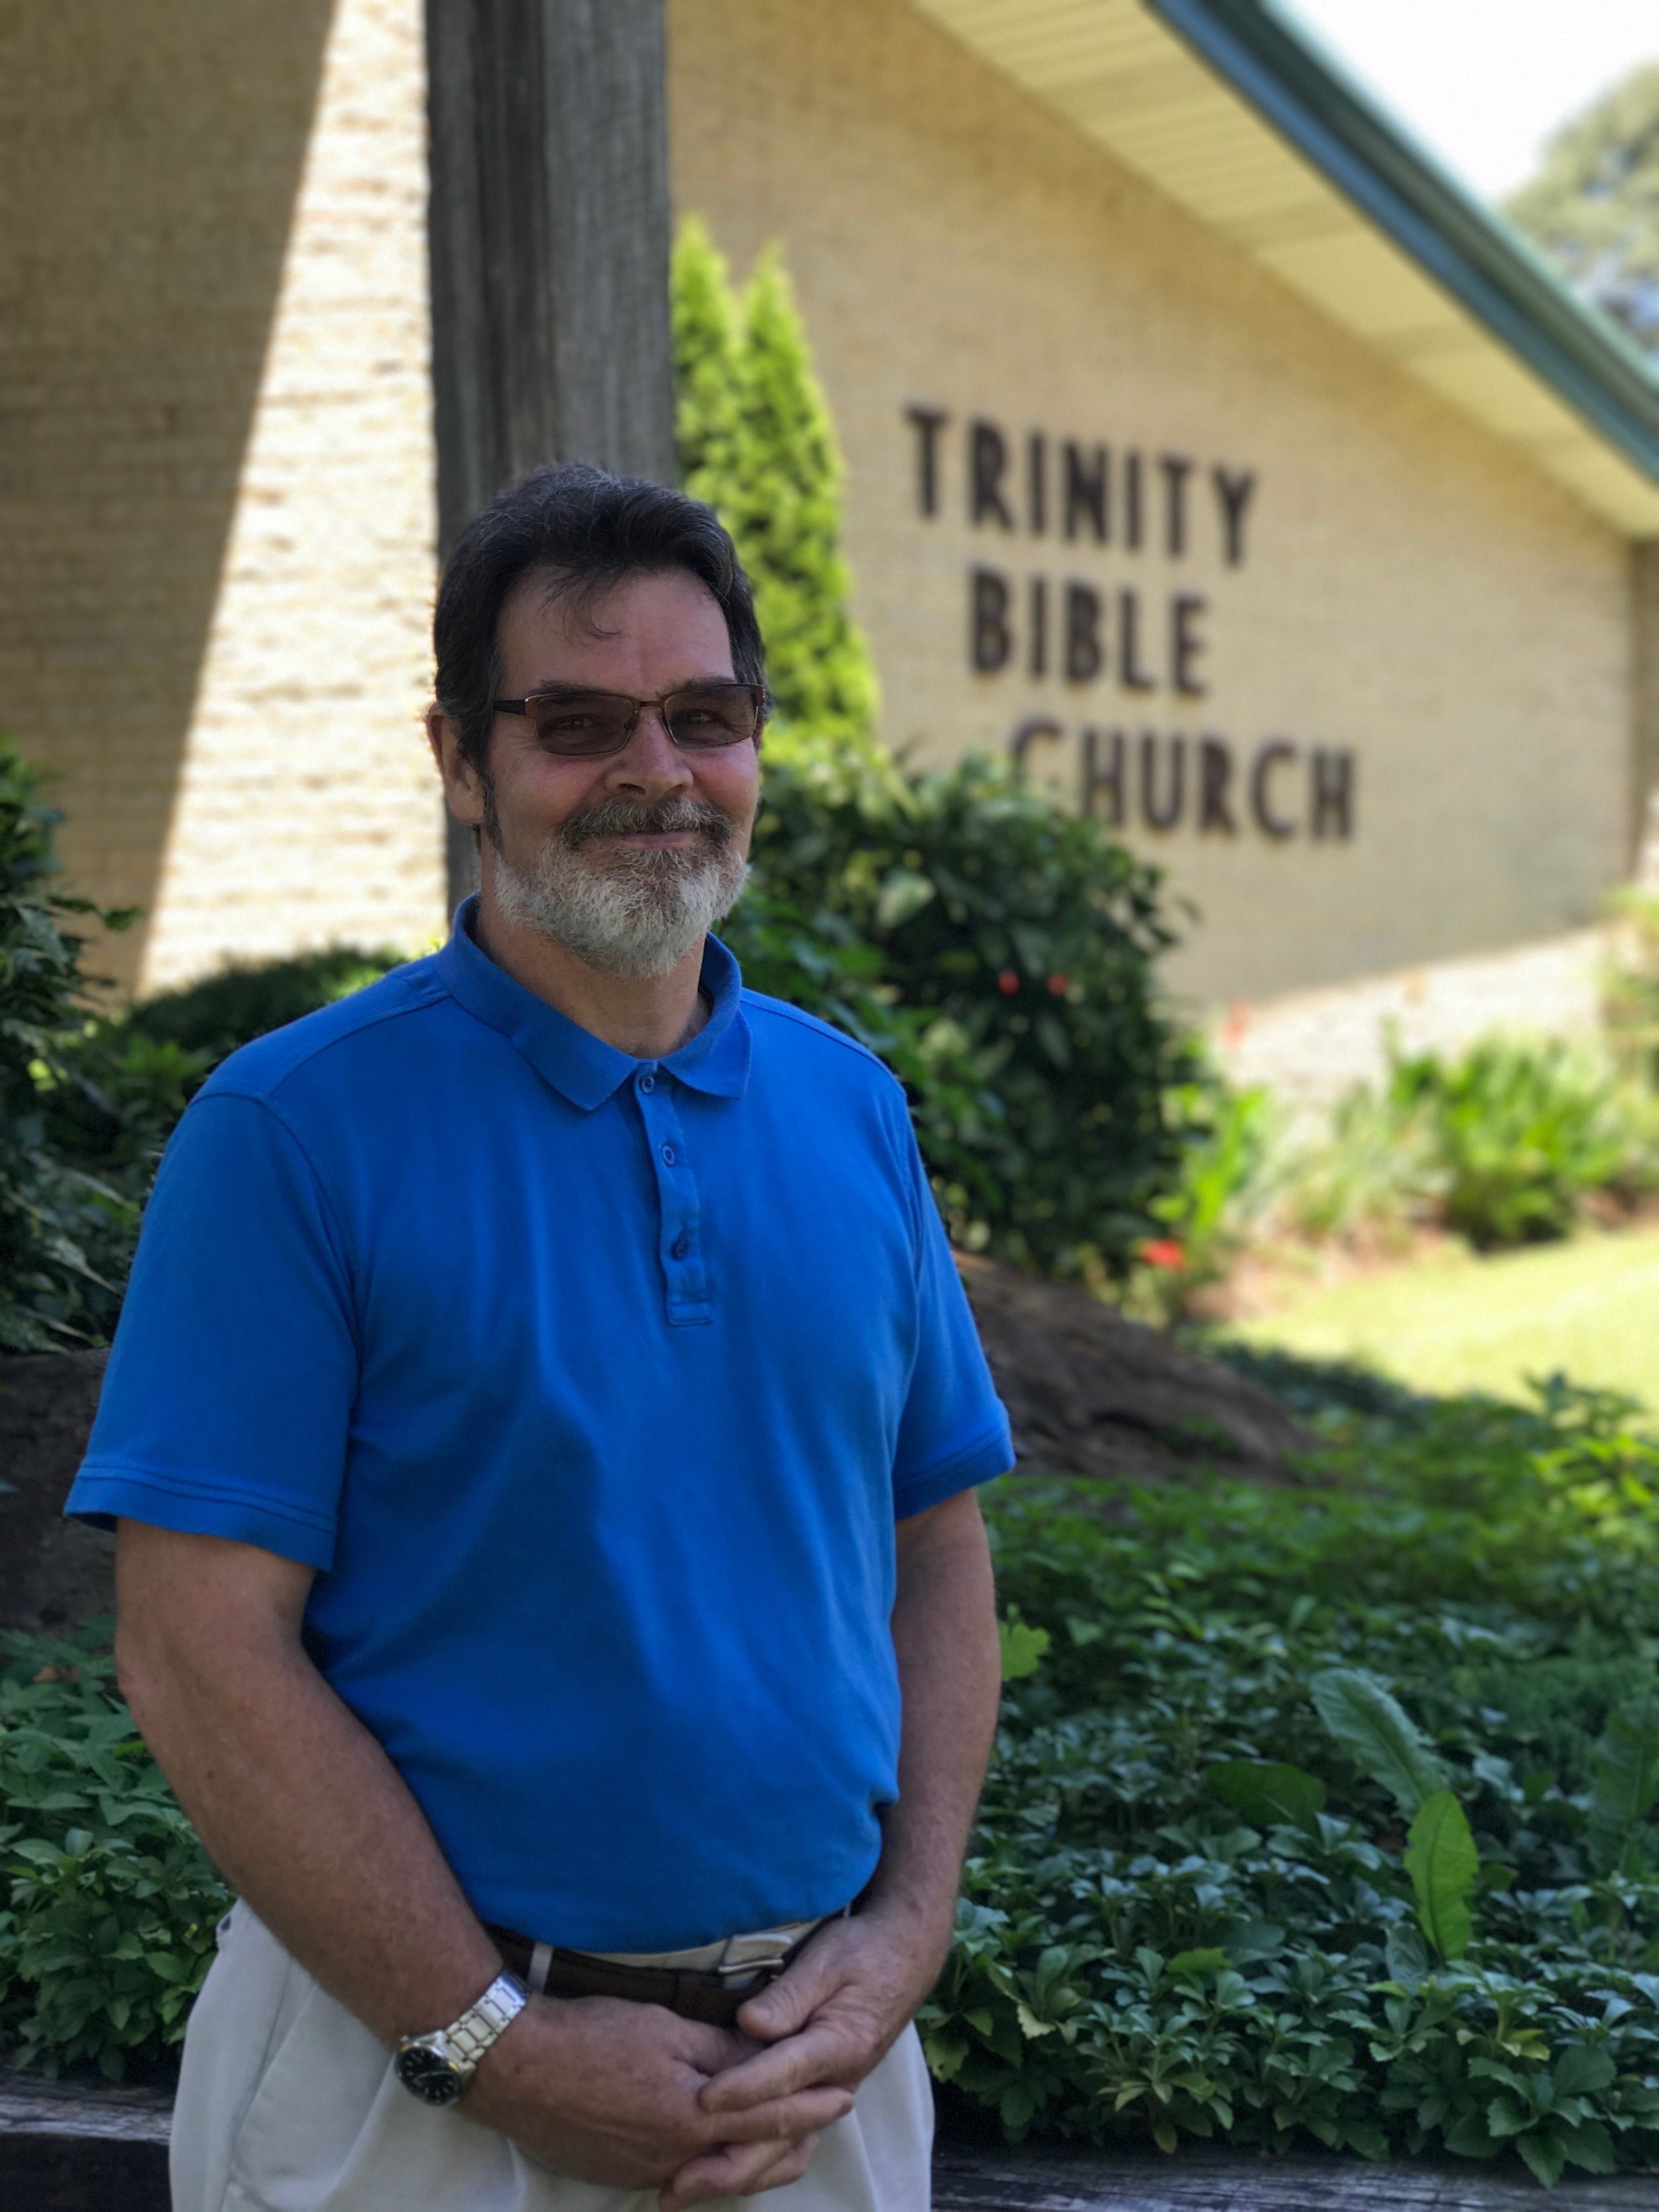 Dale Lewis became a Christian as a child. Along with his wife Lee they have served in children's ministries and nursing homes for over 20 years. They have lived in Severna Park since 1985. Dale has served as trustee, usher, and deacon and enjoys the men's bible study and men's ministries.